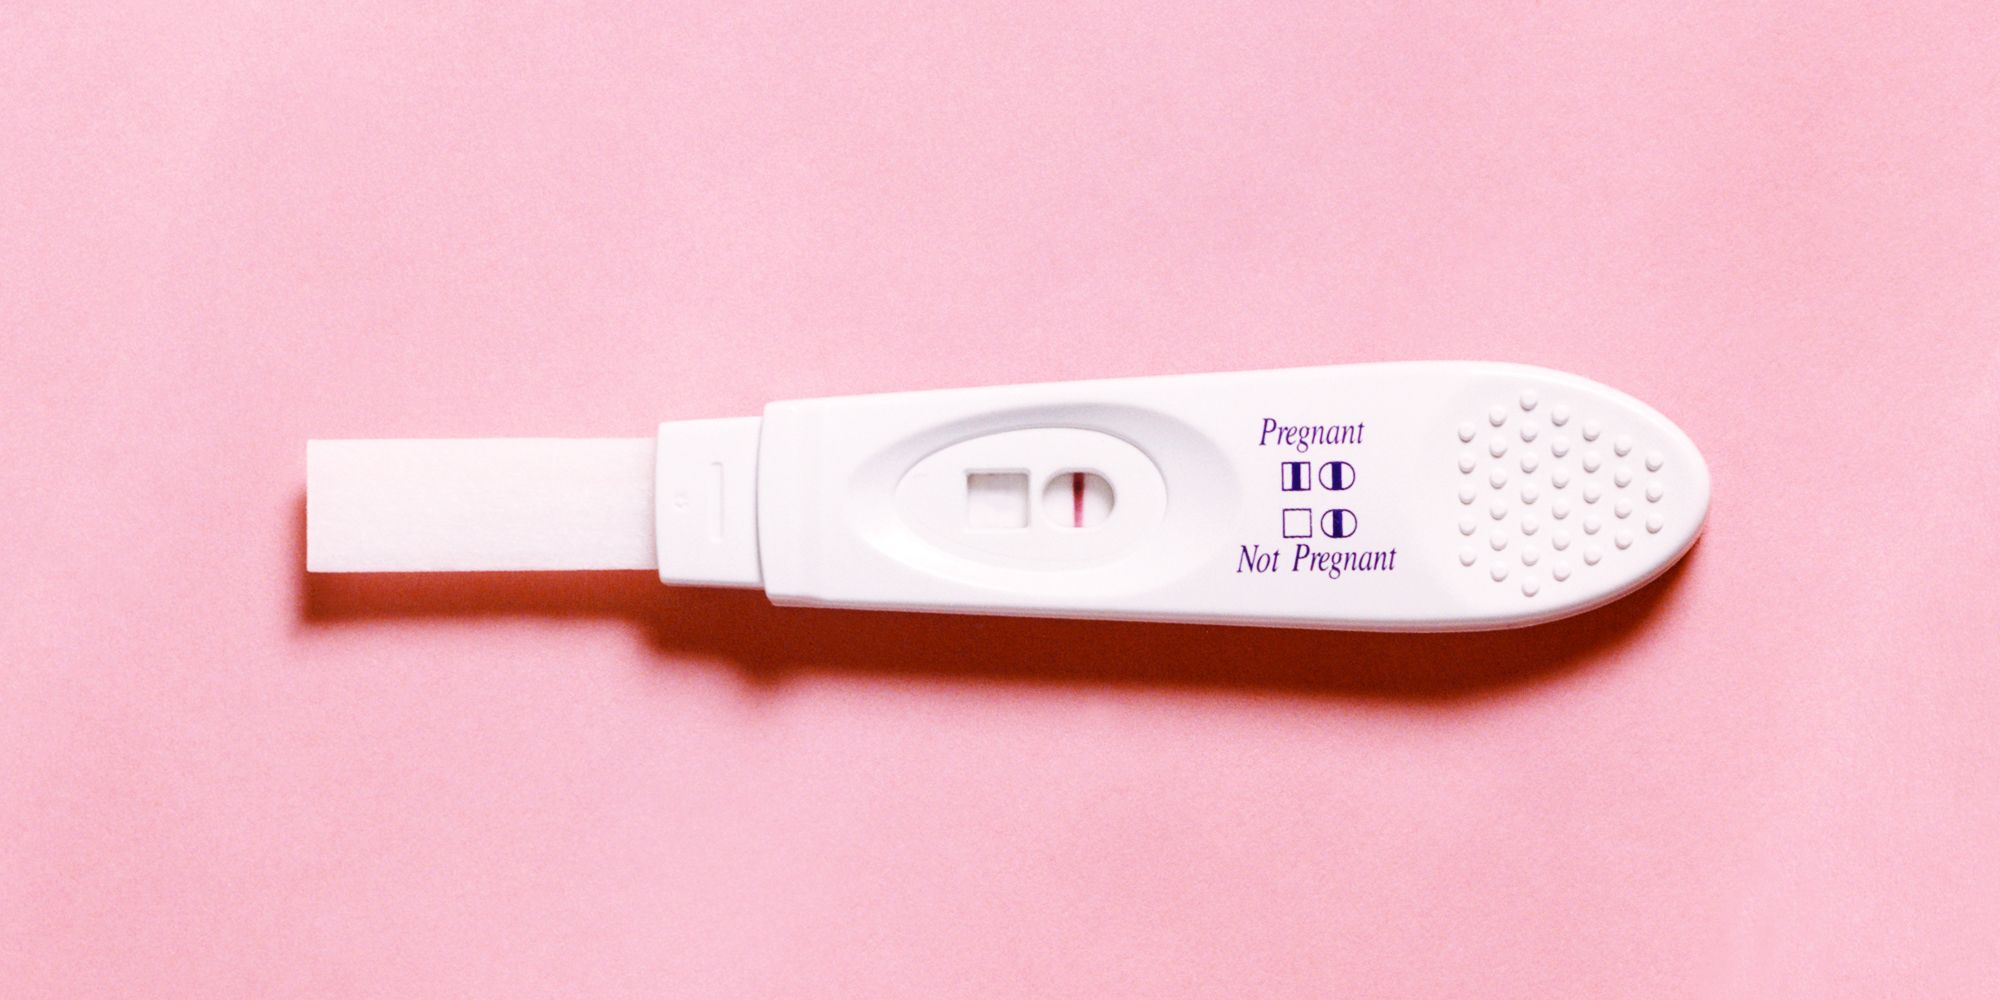 Pregnancy with ivf